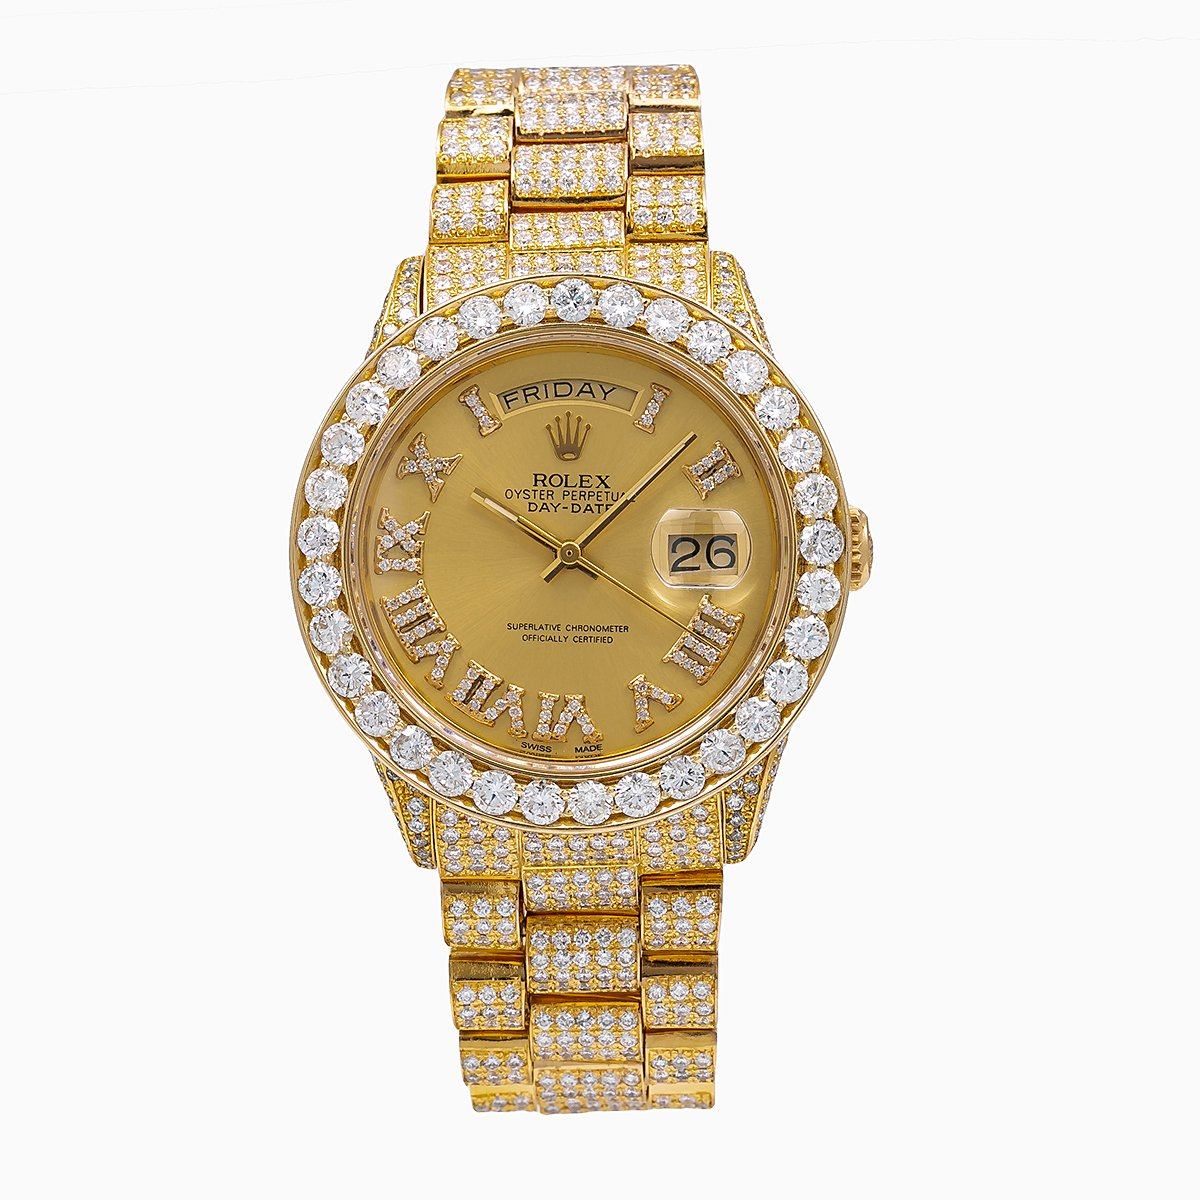 Rolex Day-Date Diamond Watch, 18038 36mm, Champagne Dial With 18.83 CT Diamonds